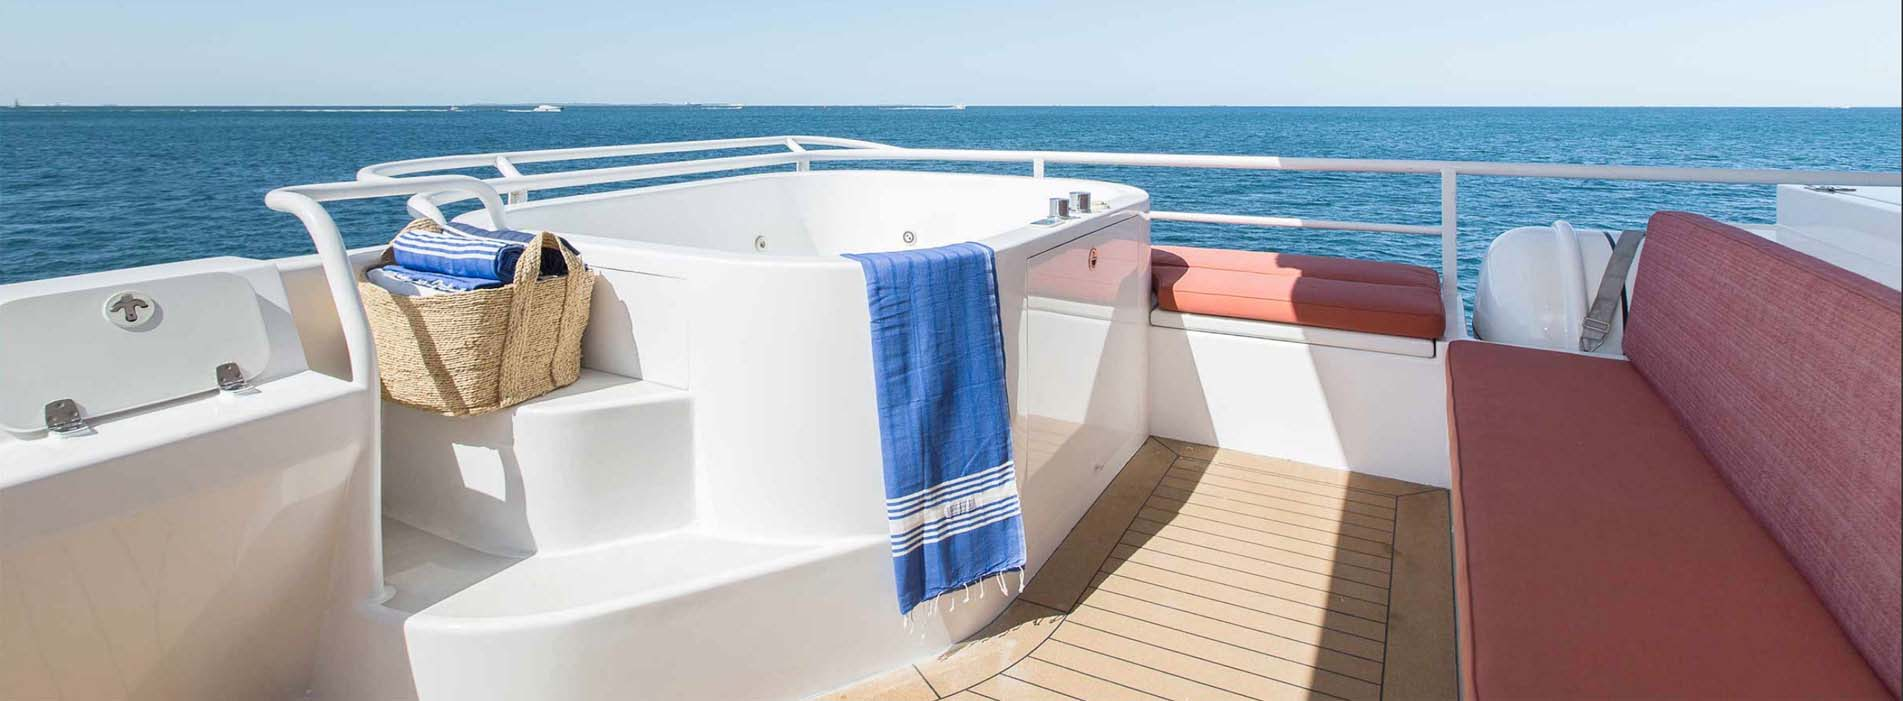 OCEAN-DREAM-spa-on-back-deck